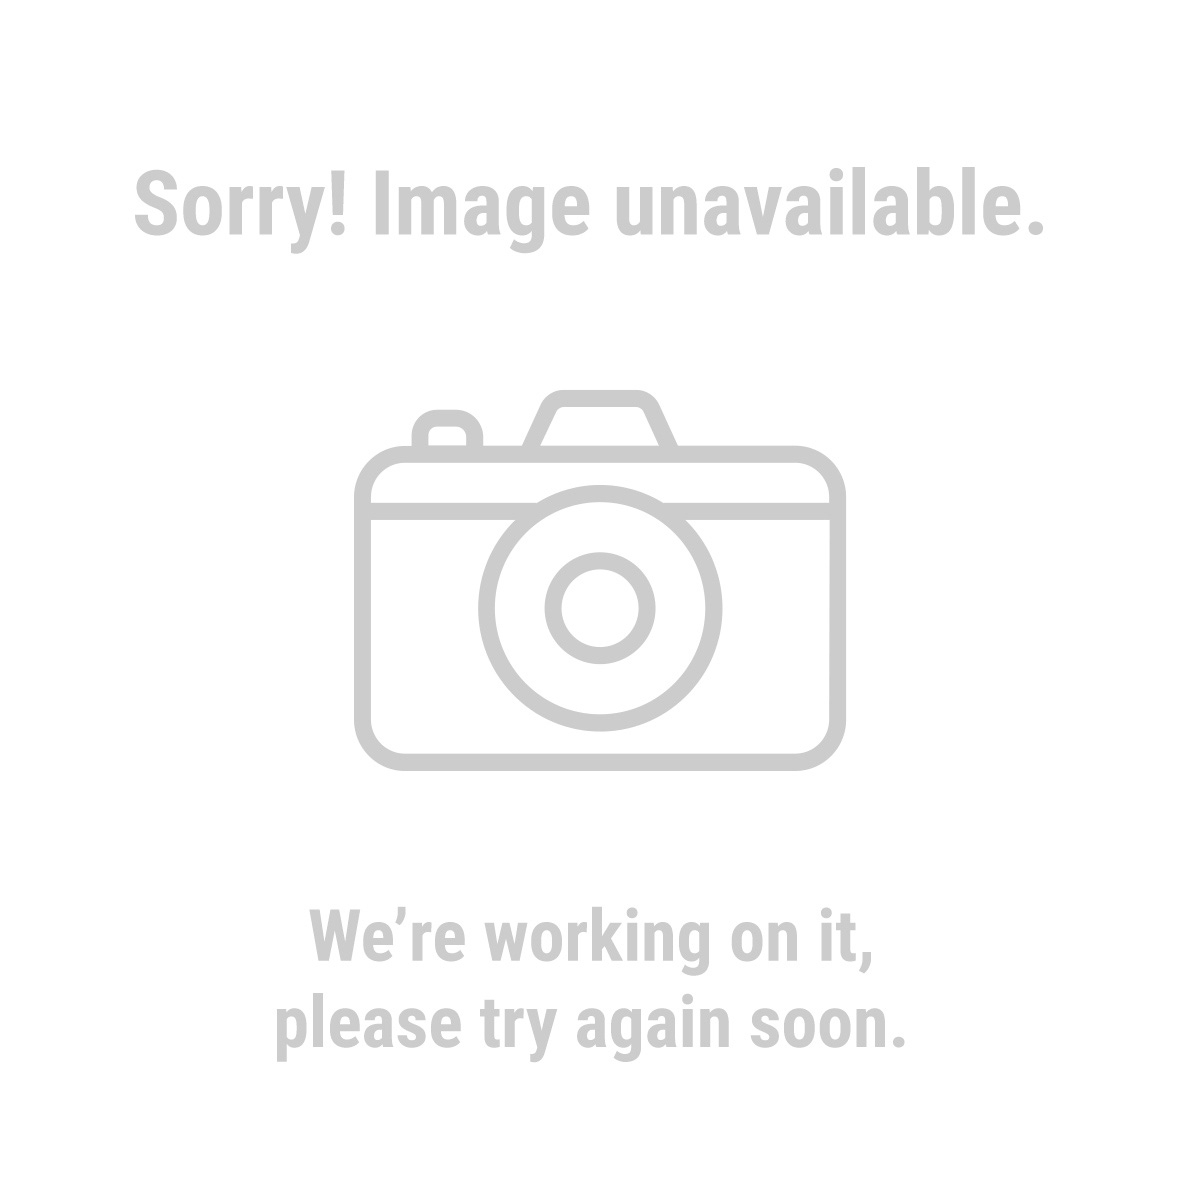 Central-Machinery 41524 3-1/2'' x 1-1/4''  Medium Duty Swivel Caster